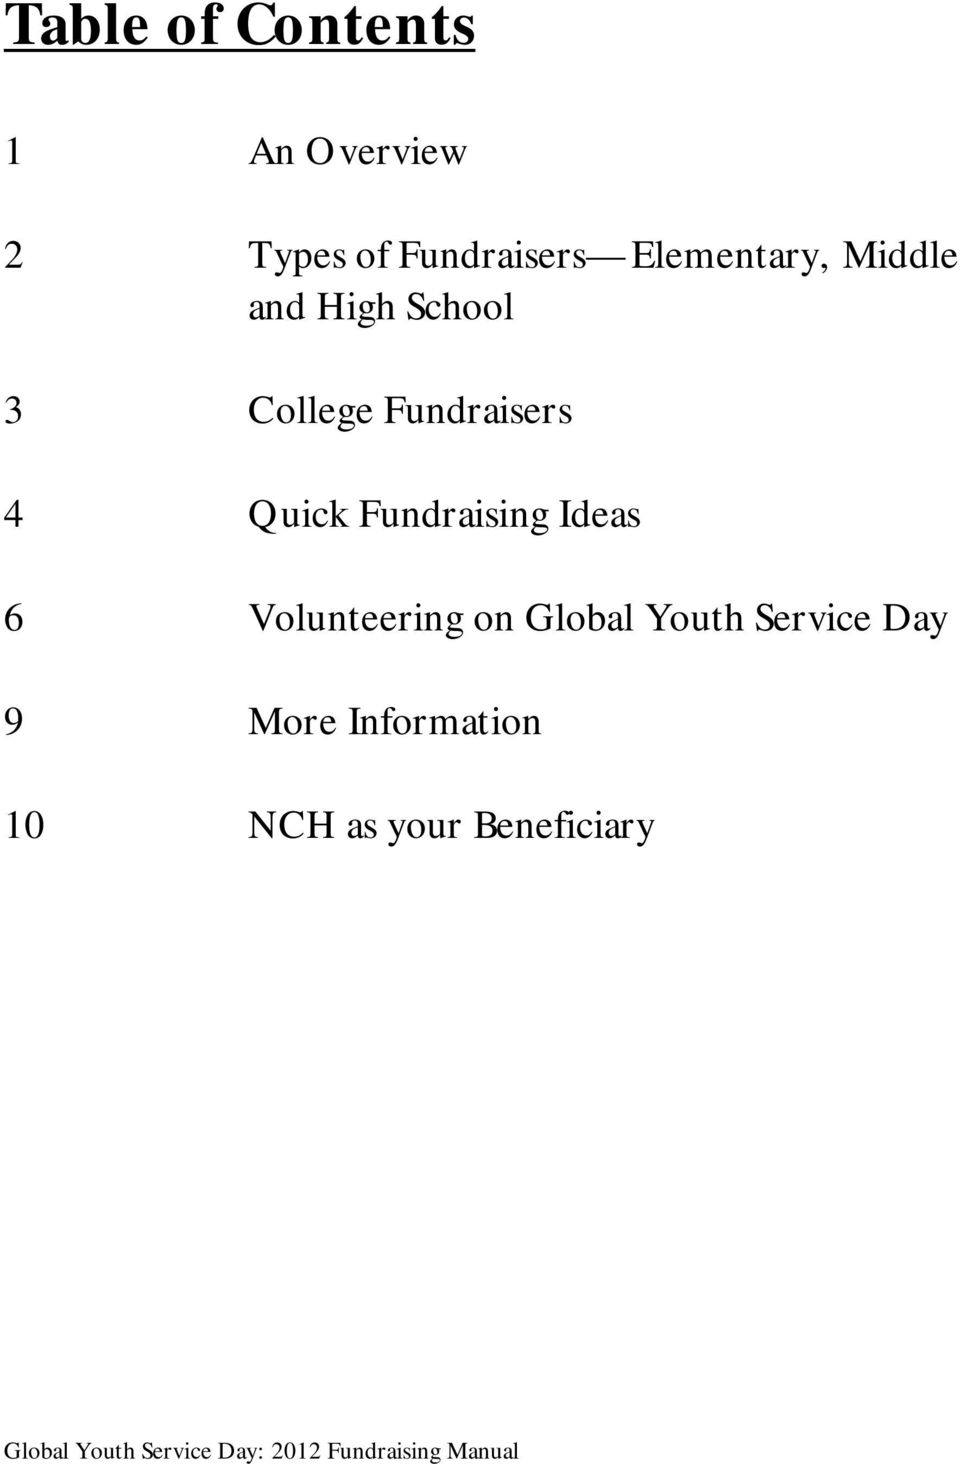 global youth service day pdf